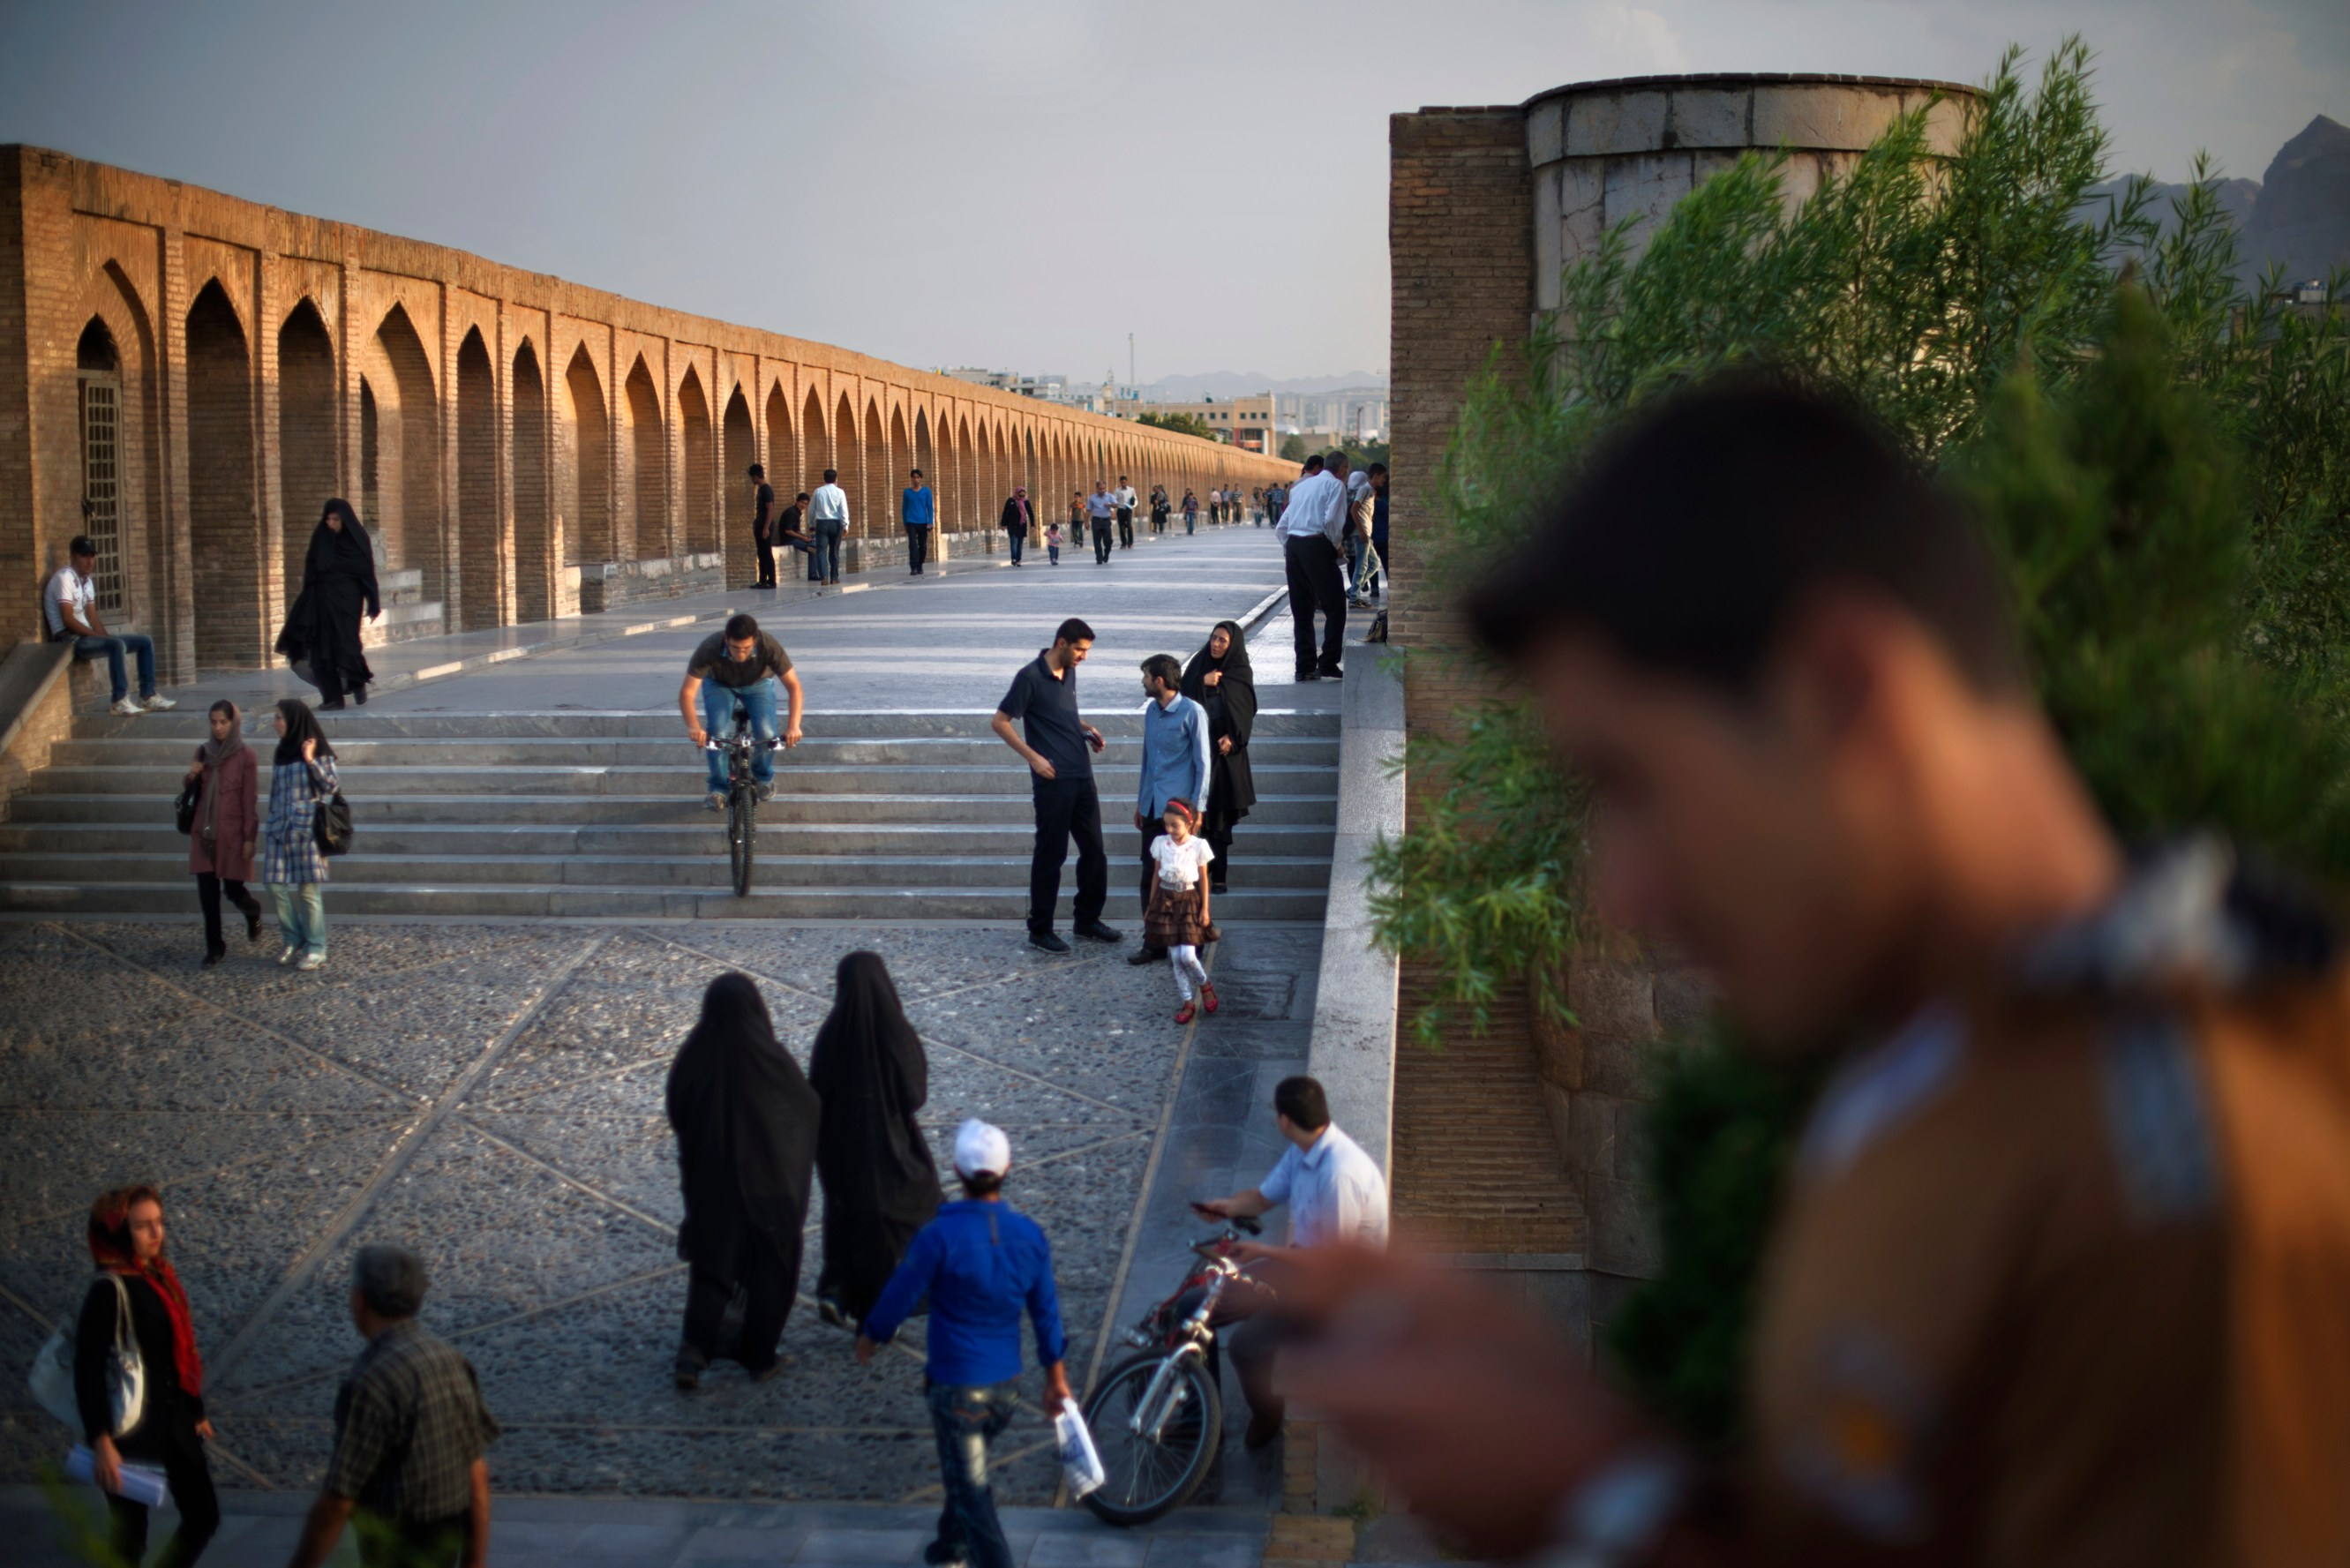 The Si-o-Seh Bridge in Esfahan is a popular spot to hang out at sunset.